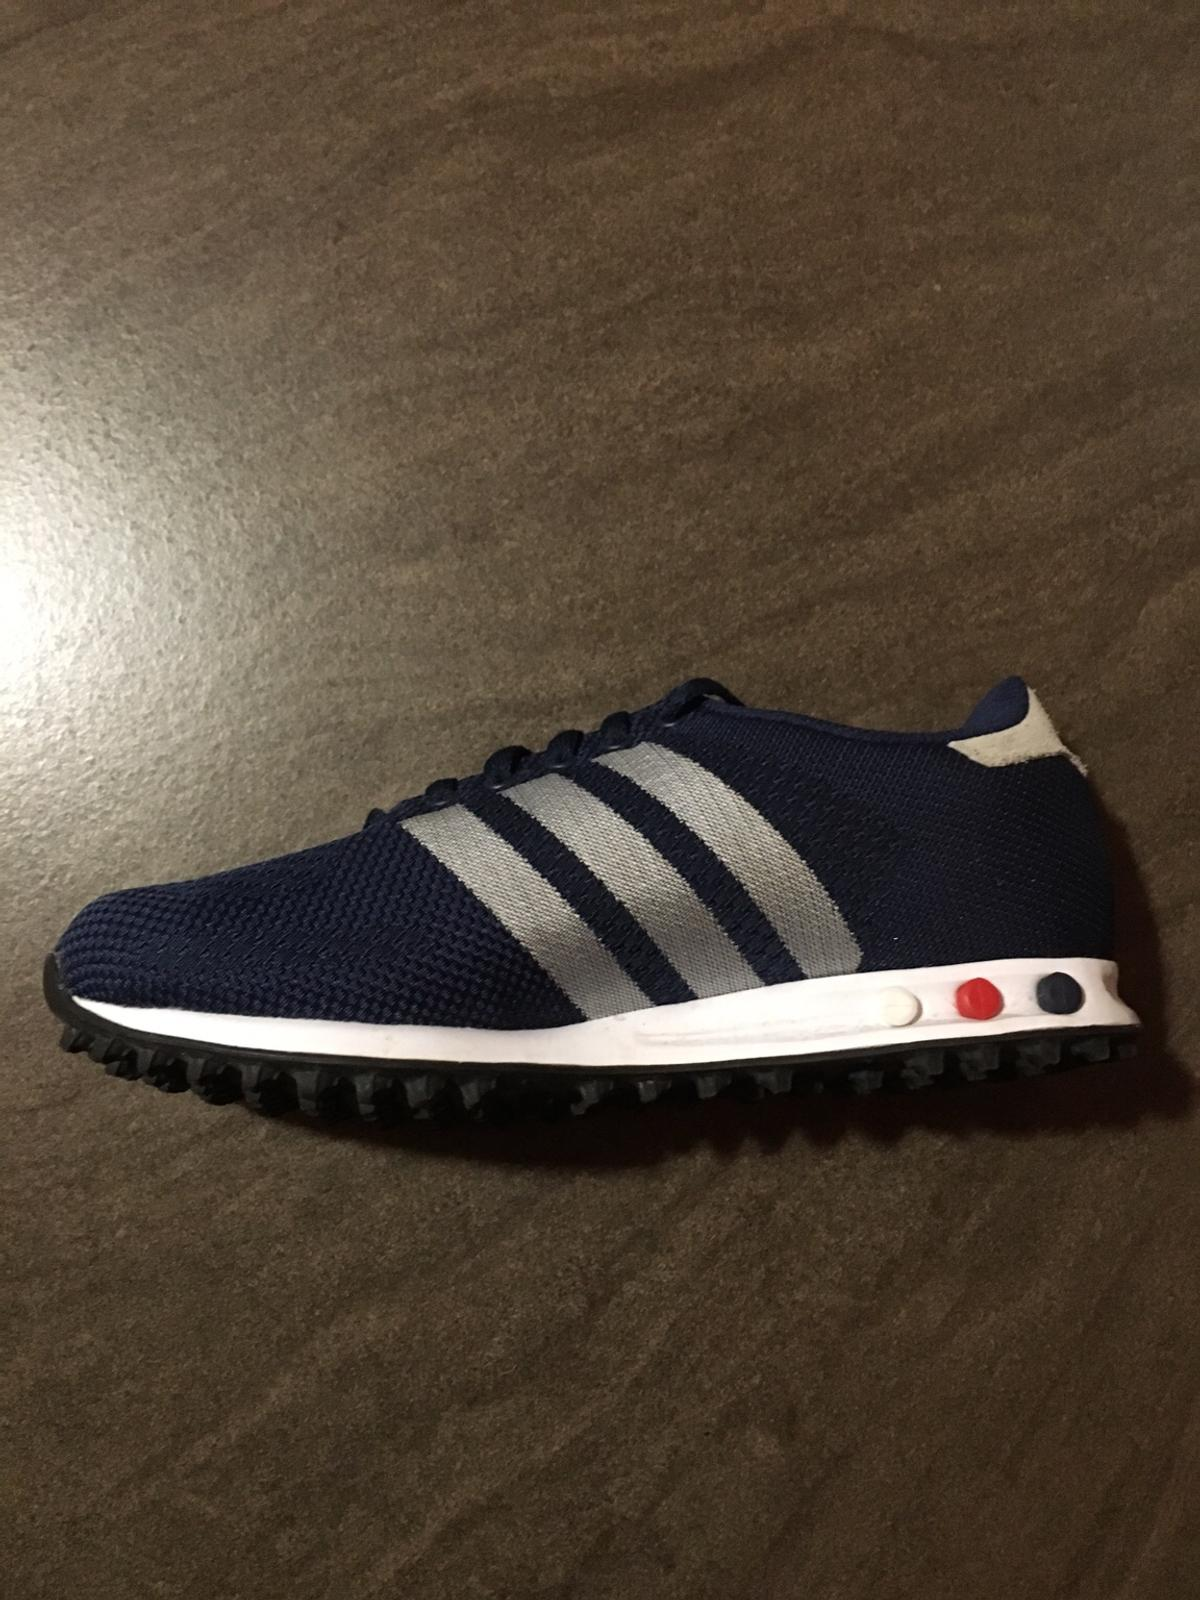 Scarpe Adidas Trainer blu in 00118 Roma for €40.00 for sale